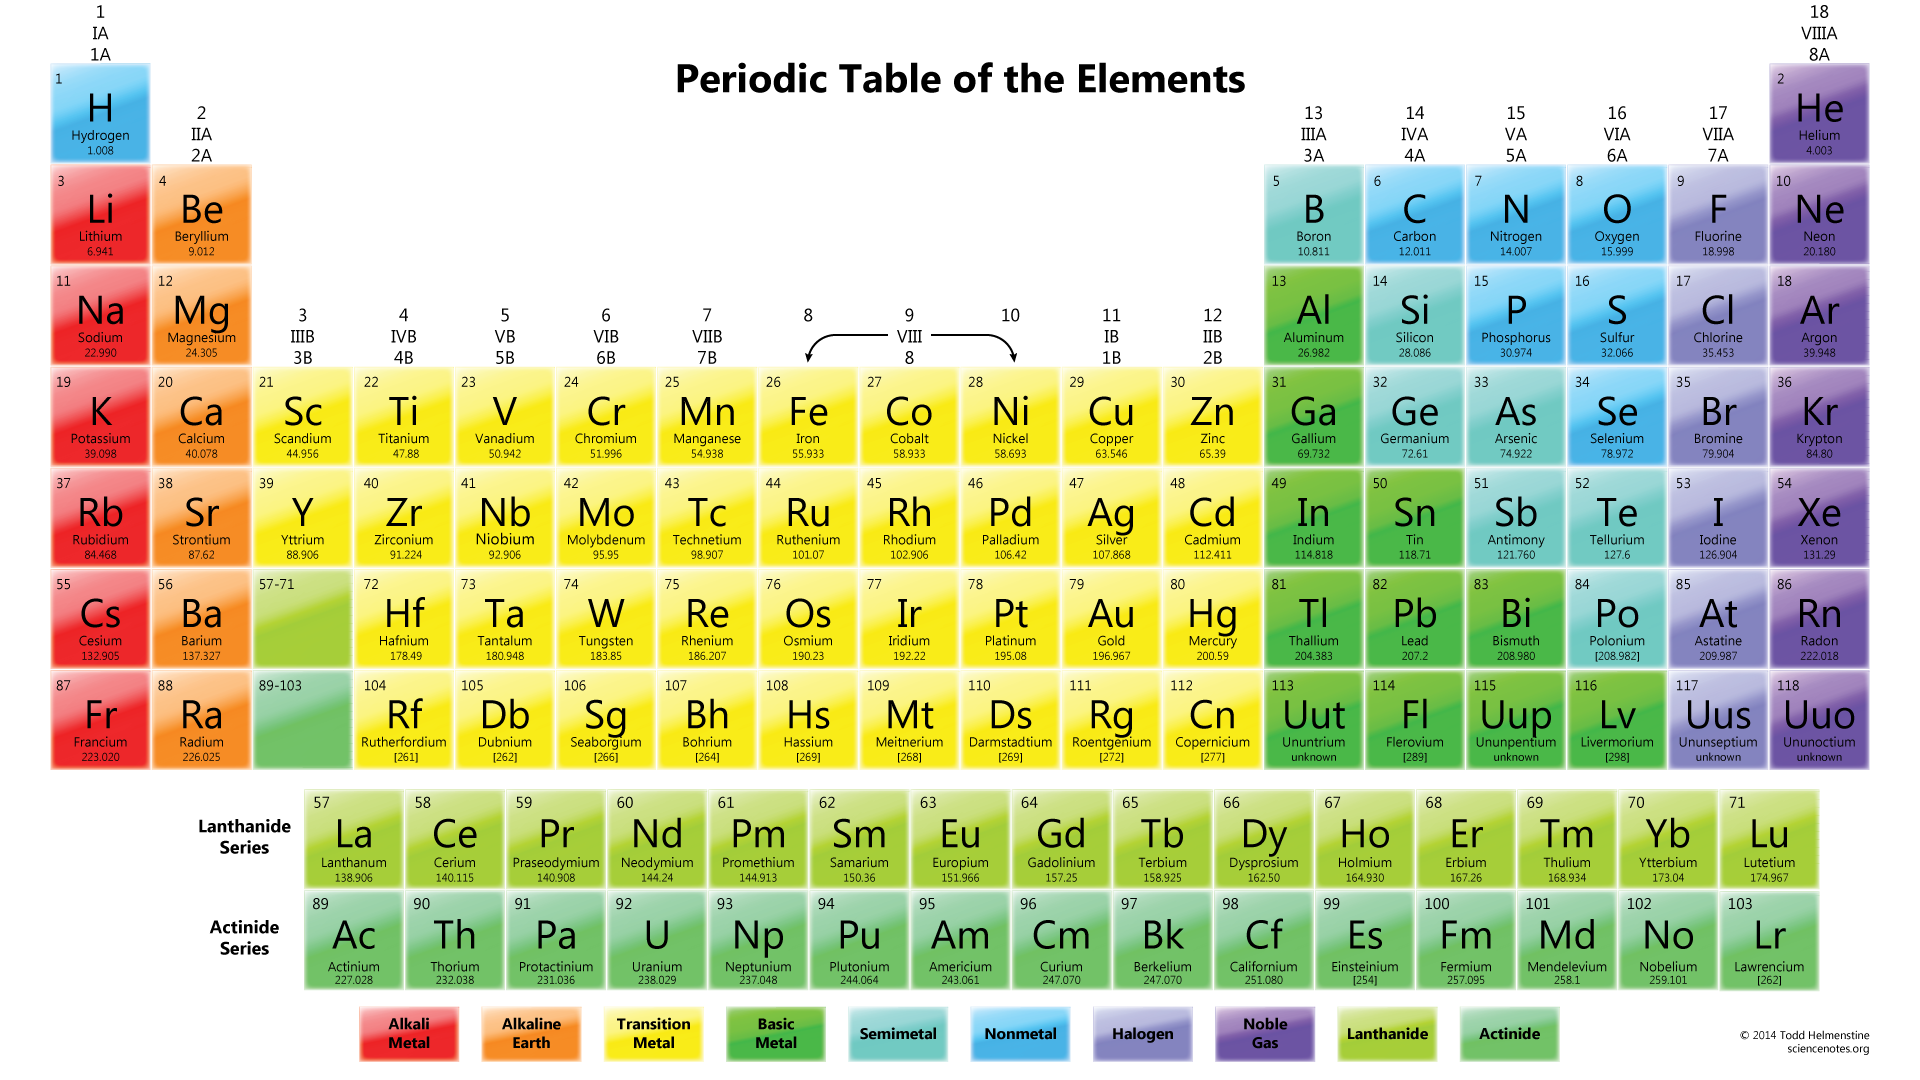 (http://sciencenotes.org/wp-content/uploads/2014/11/ColorfulPeriodicTable.png)